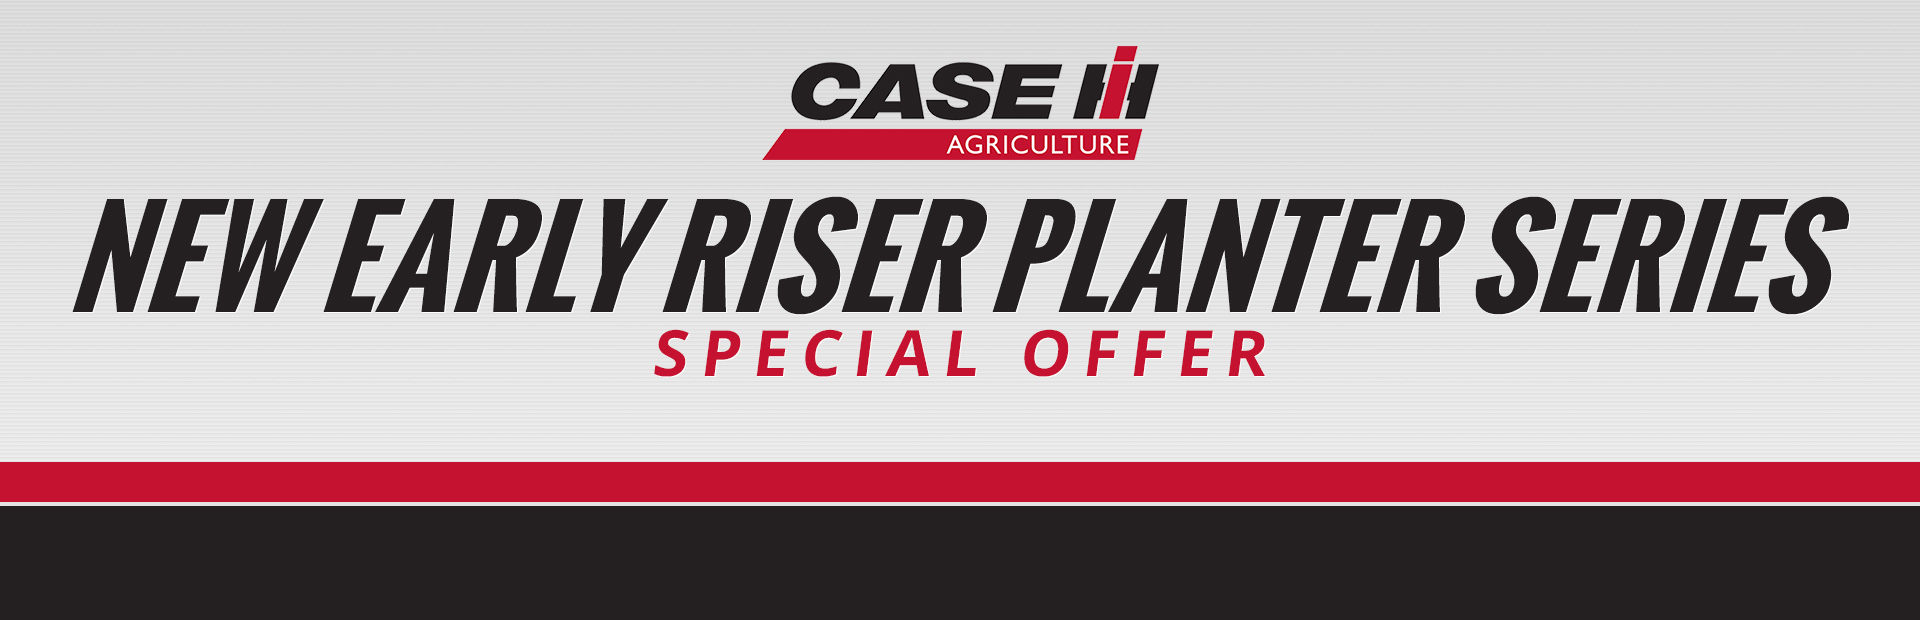 Case IH: New Early Riser Planter Series Special Offer